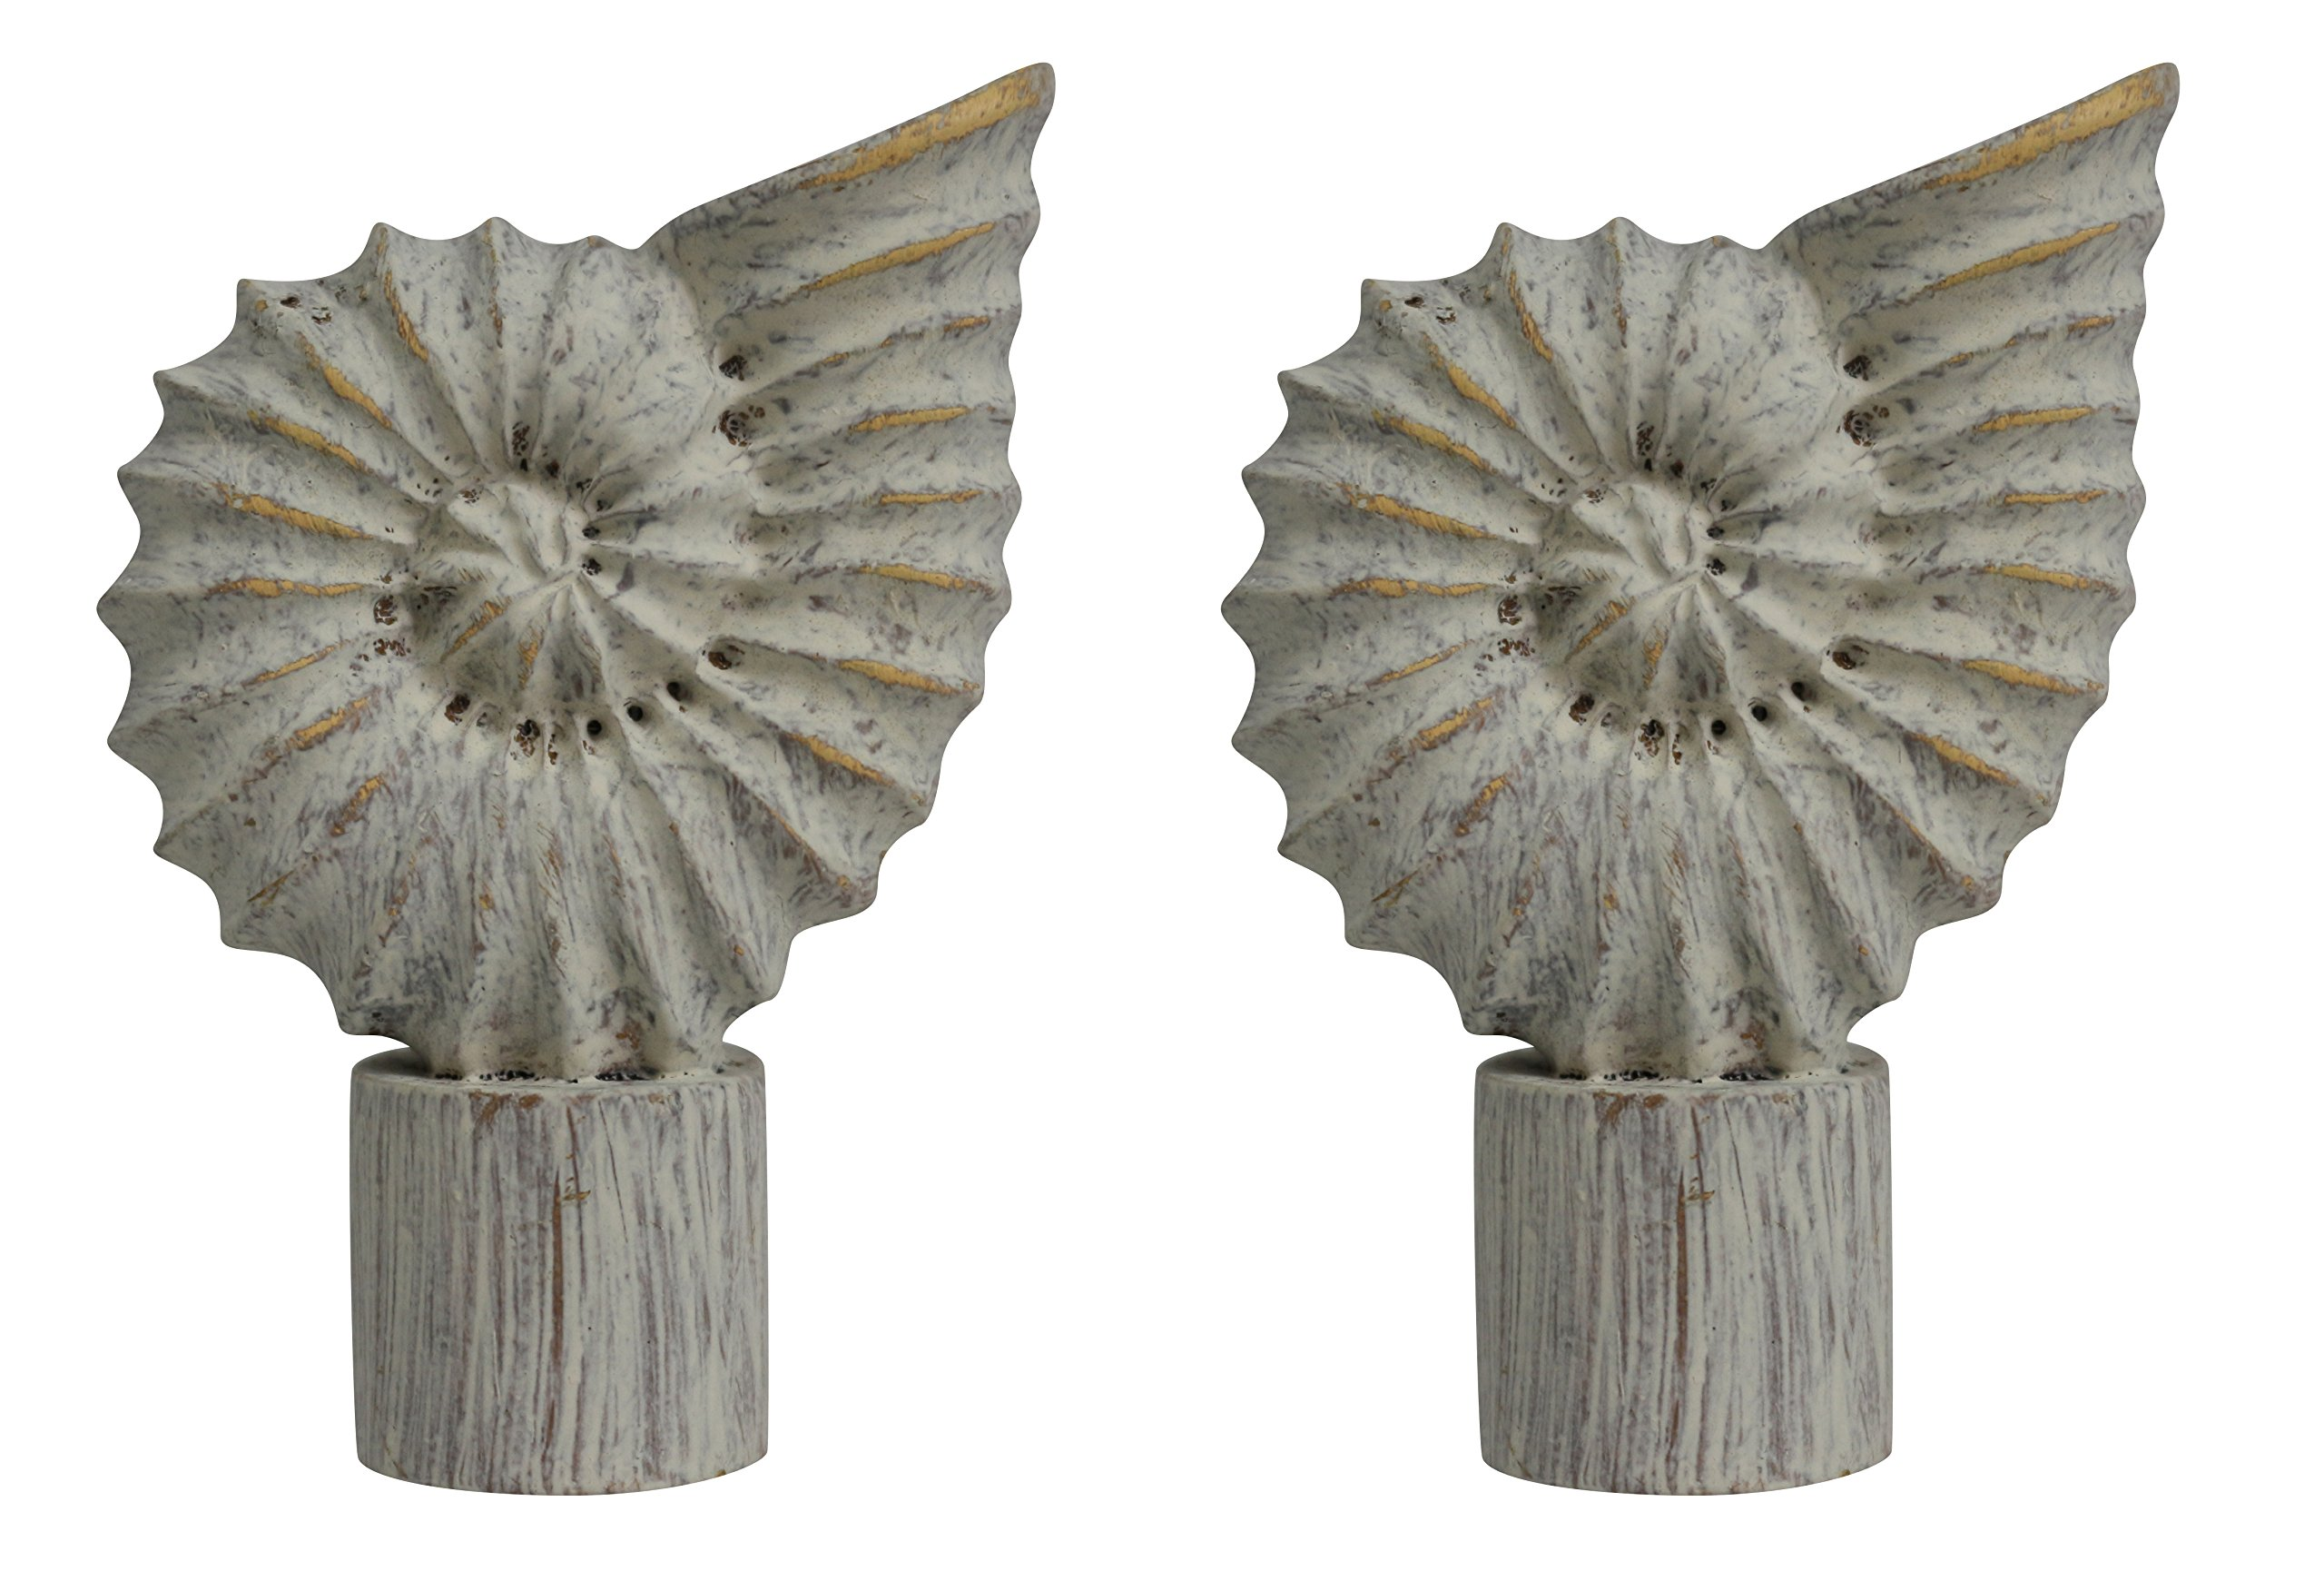 Urbanest Set of 2 Seashell Finial, 2 5/8-inch Tall, Weathered White